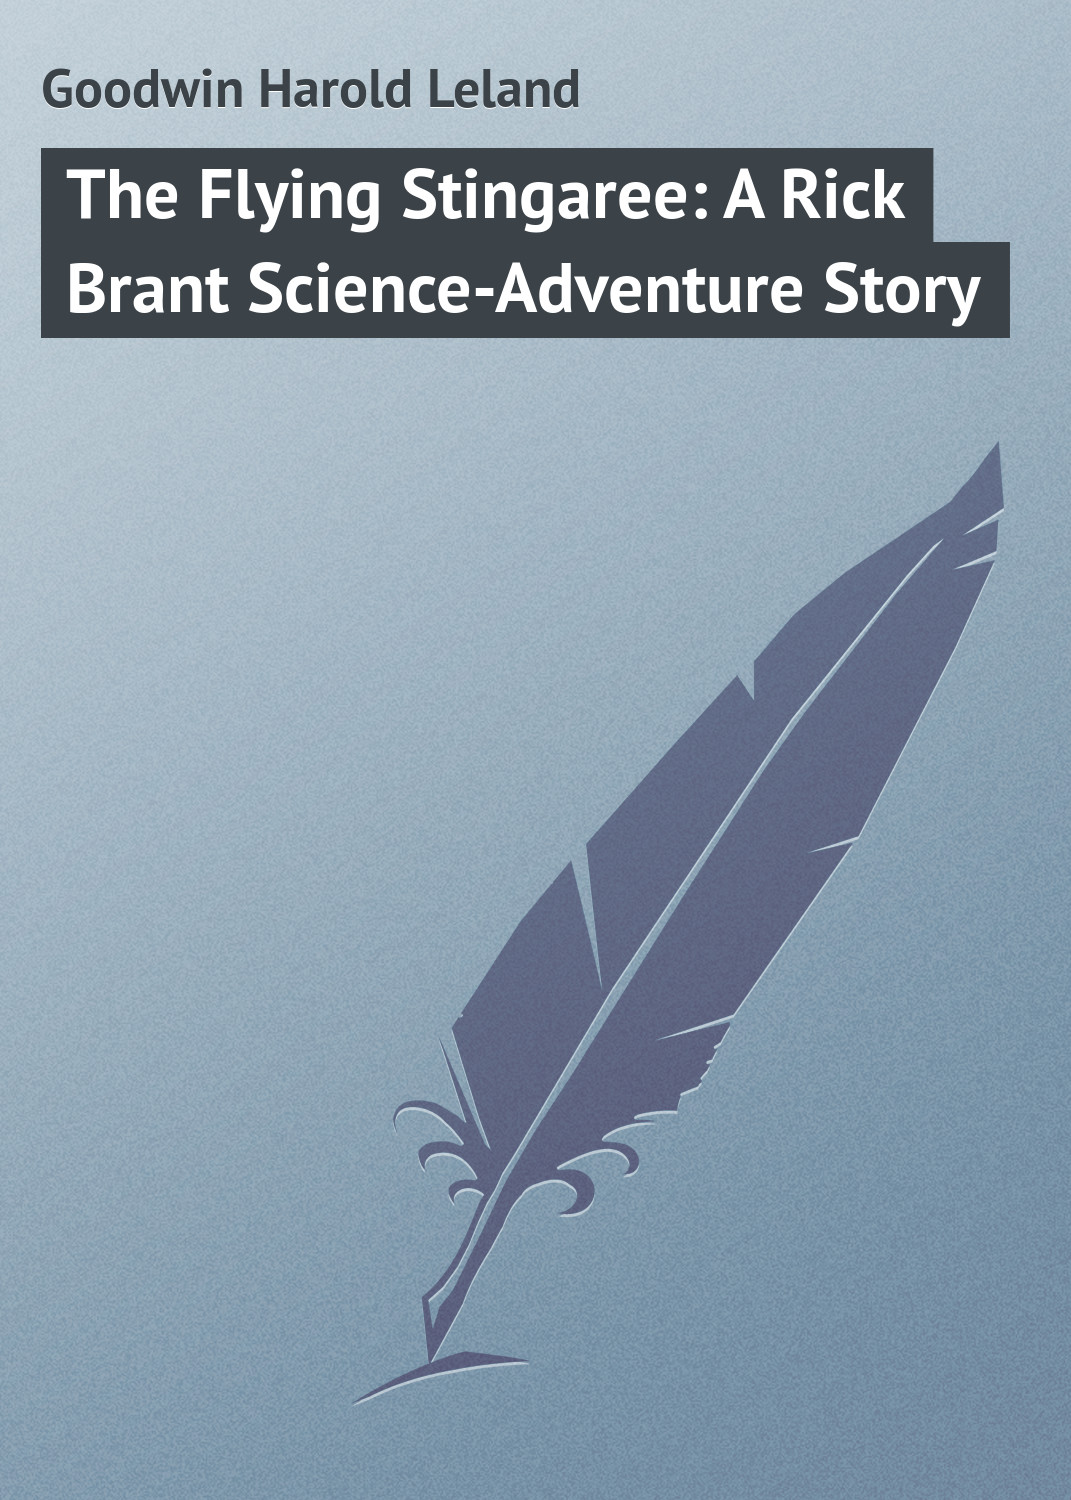 Goodwin Harold Leland The Flying Stingaree: A Rick Brant Science-Adventure Story goodwin harold leland the flying stingaree a rick brant science adventure story